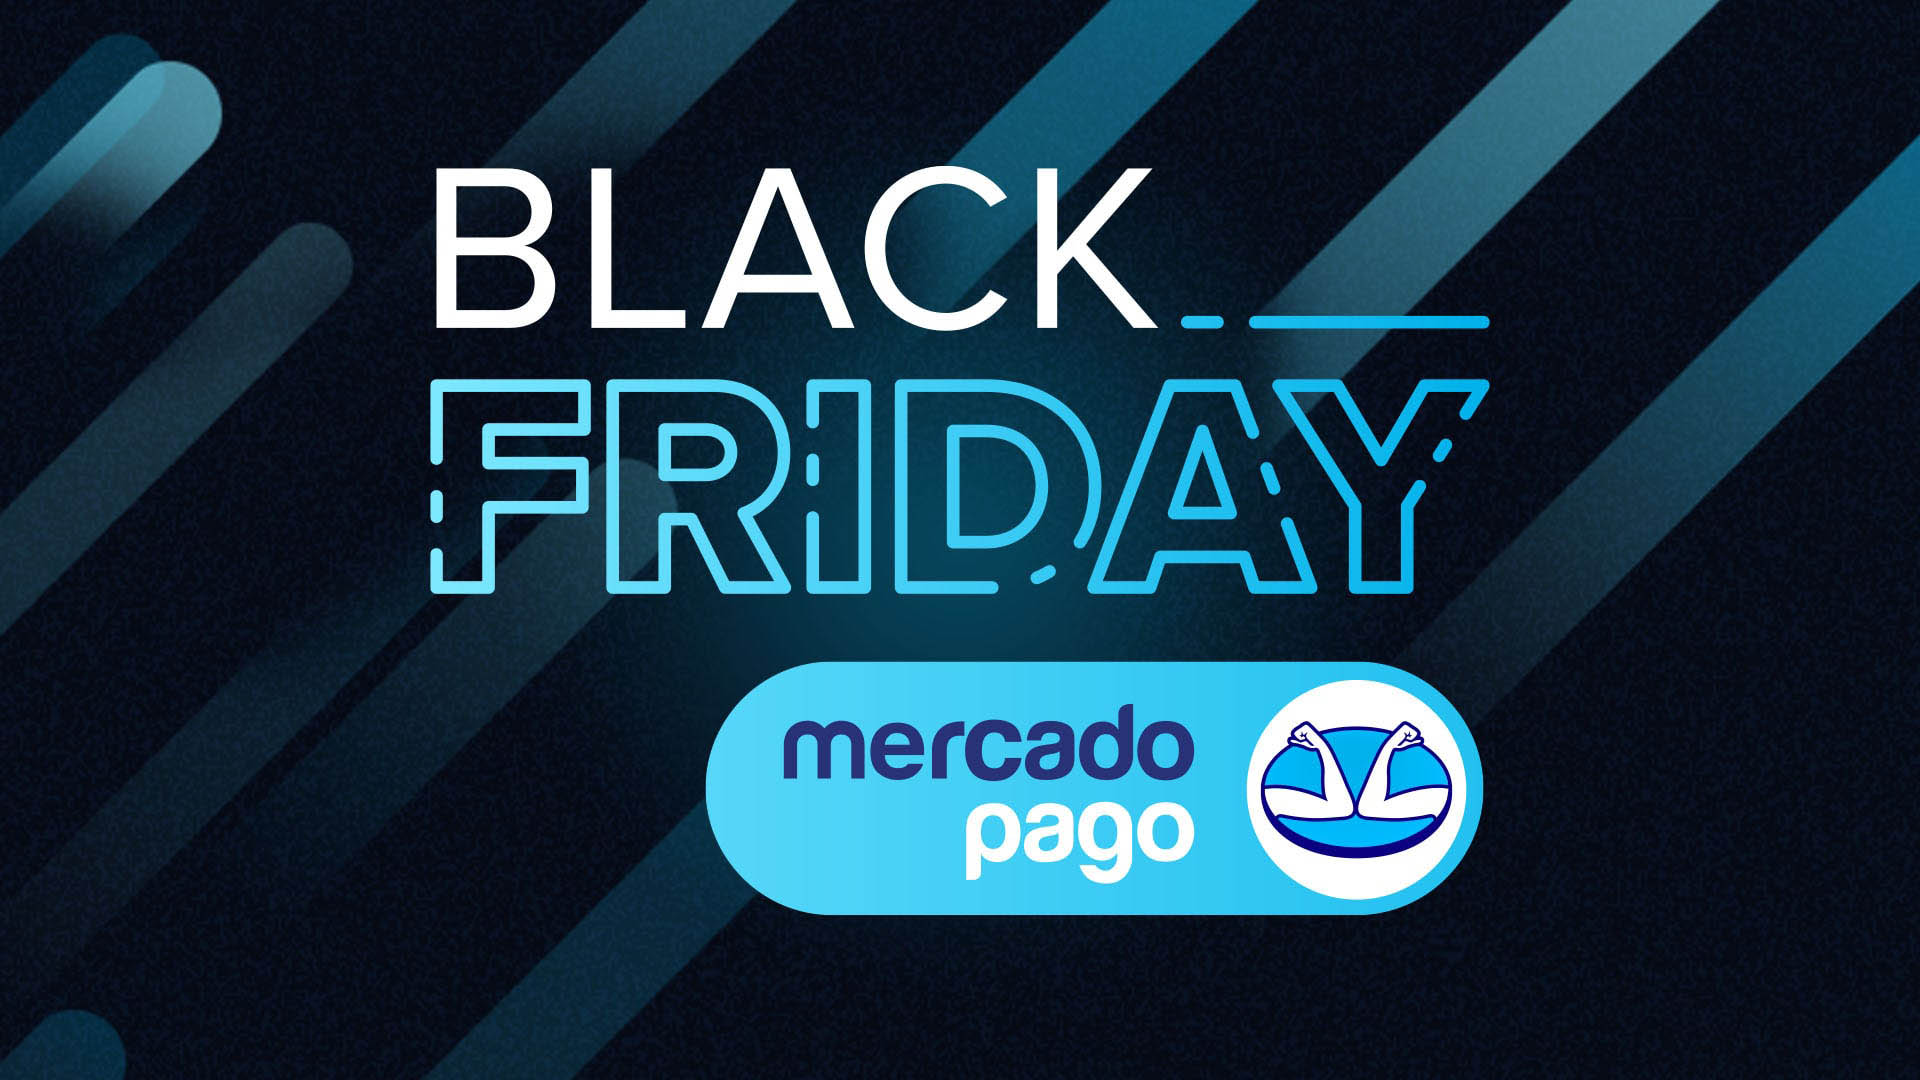 black friday mercado pago